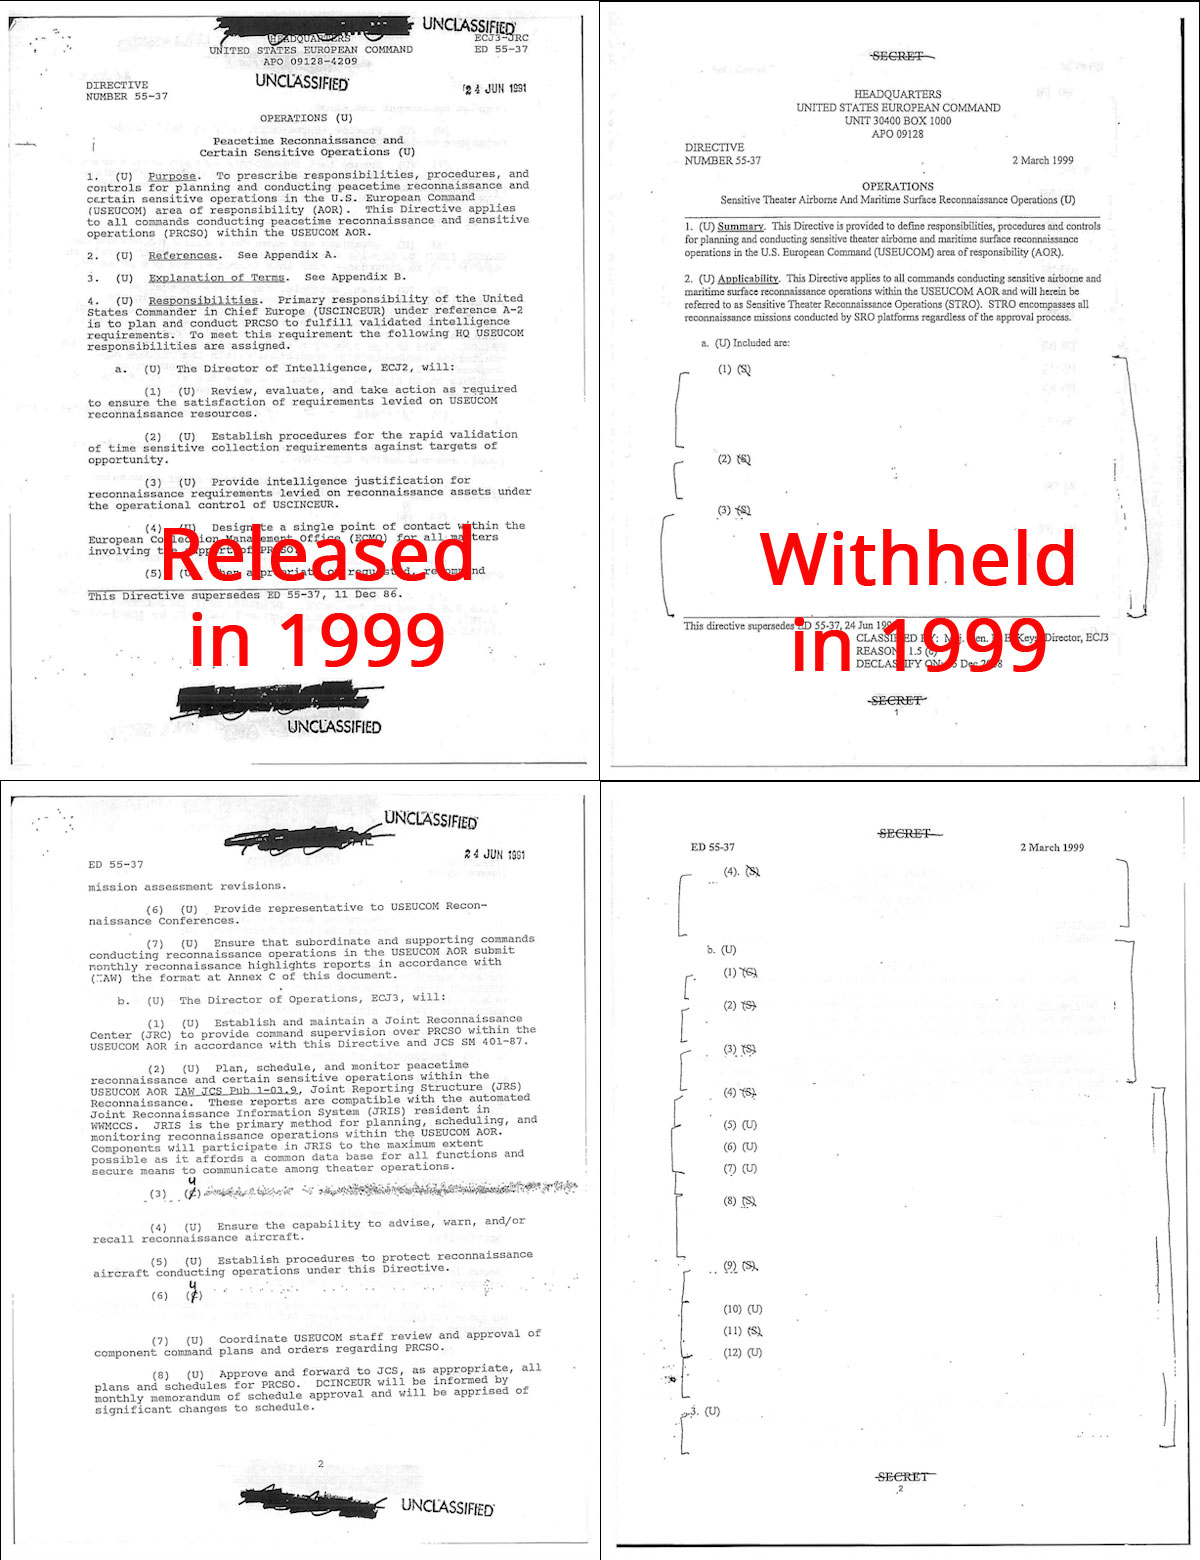 Side-by-side images of different declassifications of the same information